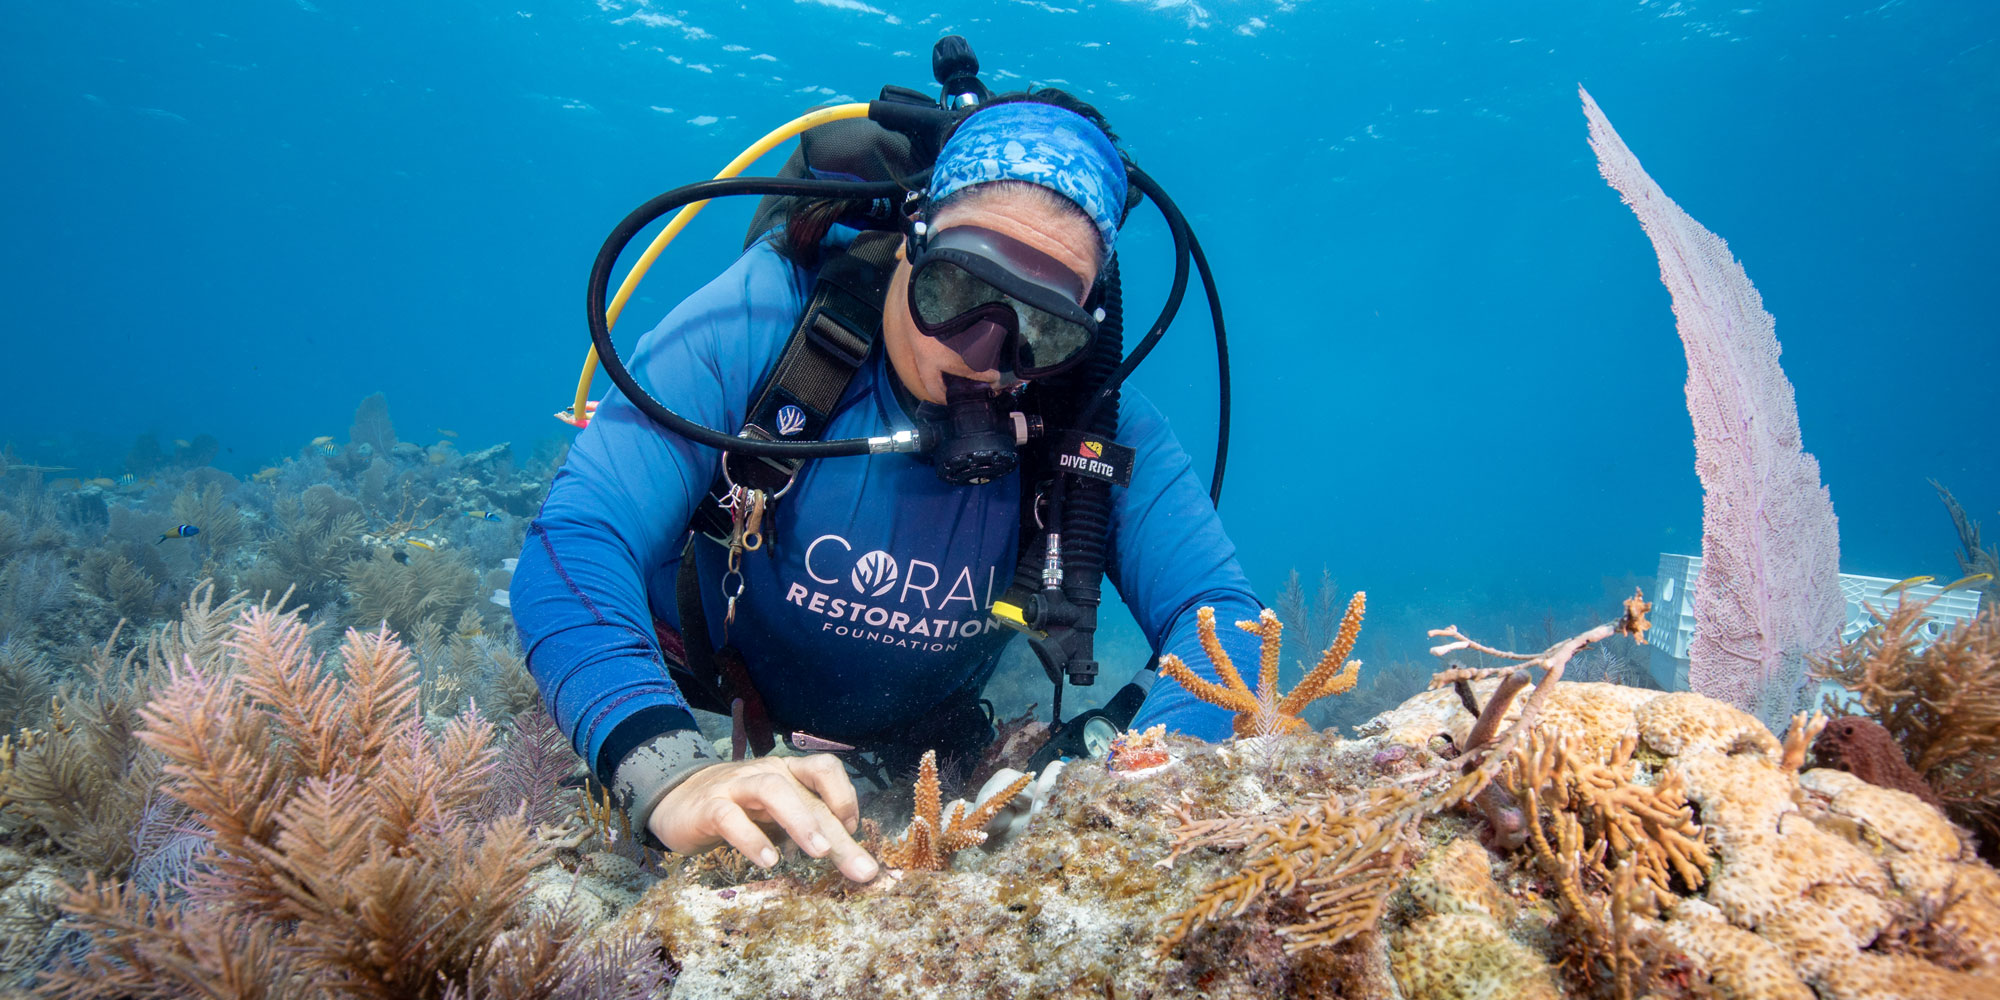 Jessica Levy secures new corals. Coral restoration